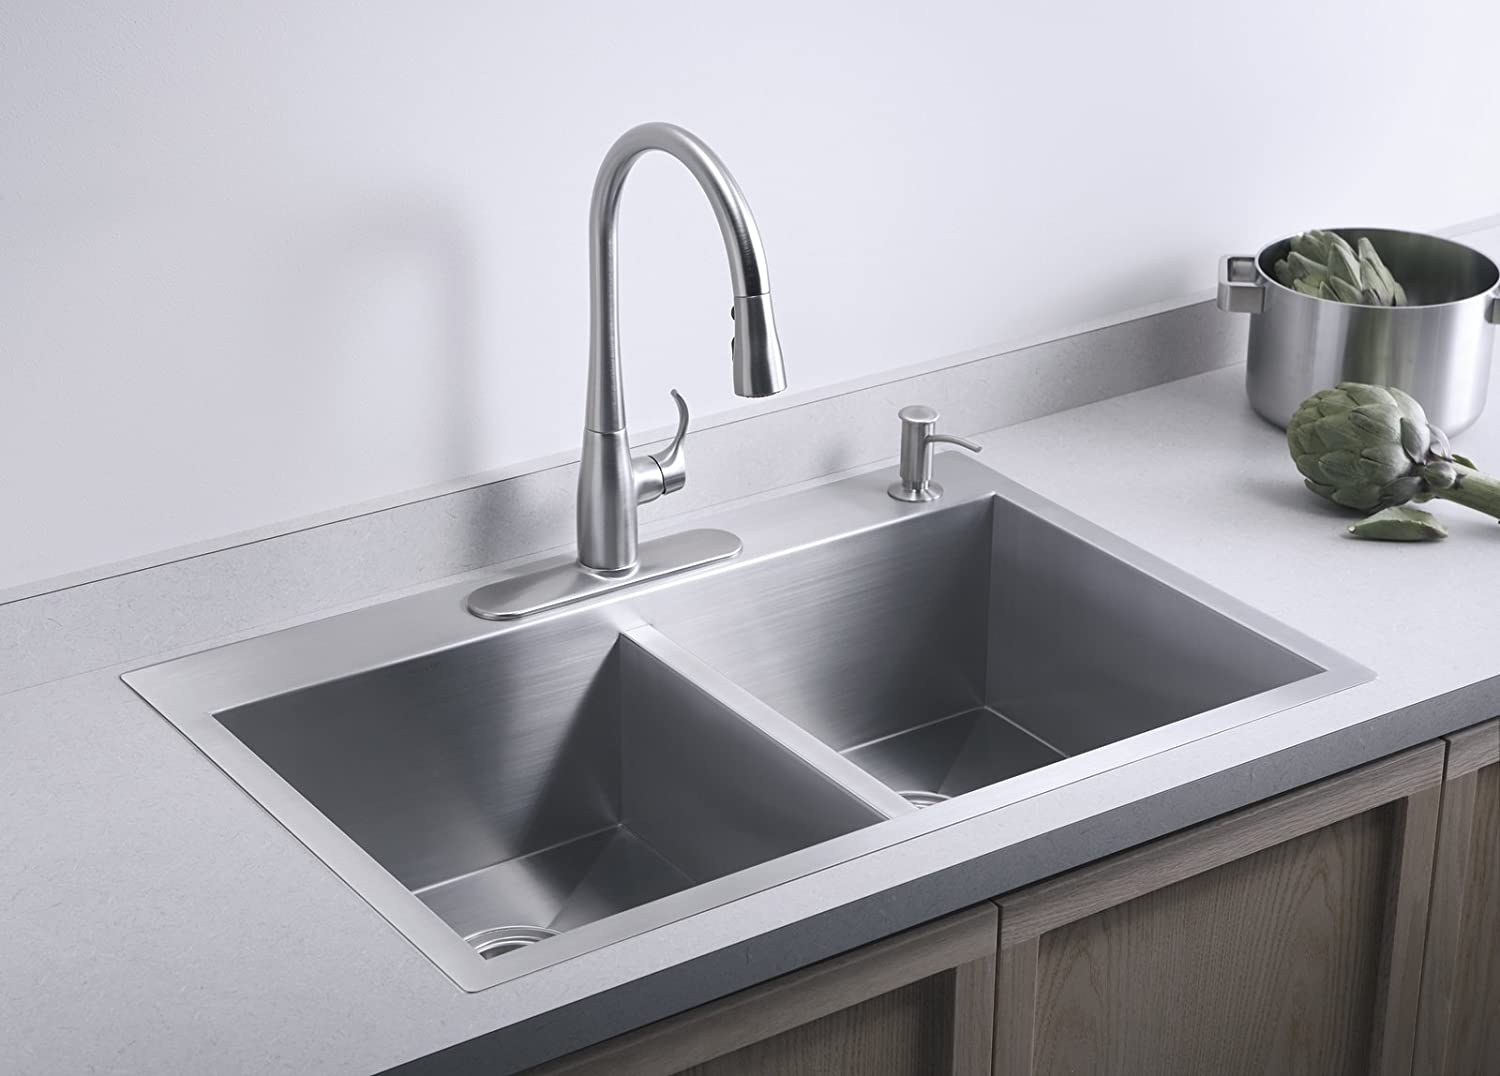 Charmant KOHLER K 3820 4 NA Vault Double Equal Kitchen Sink With Four Hole Faucet  Drilling   Double Bowl Sinks   Amazon.com